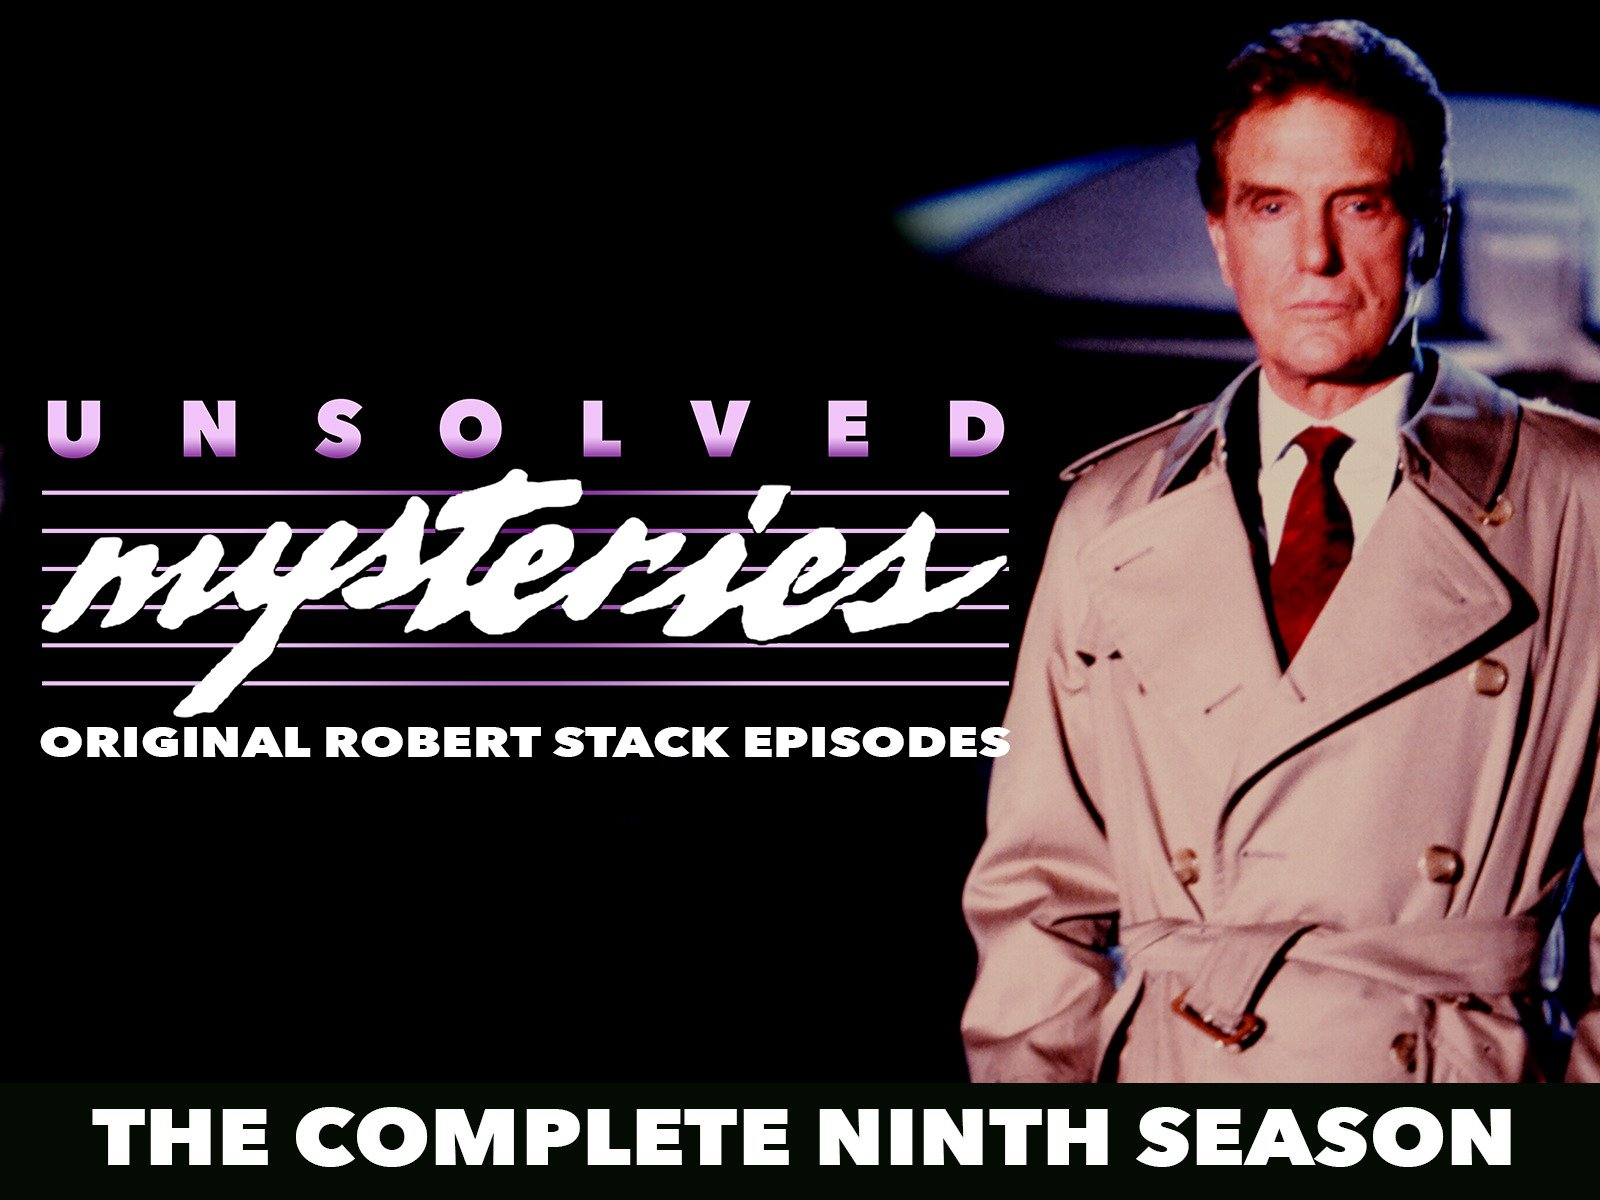 Unsolved Mysteries: Original Robert Stack Episodes - Season 9